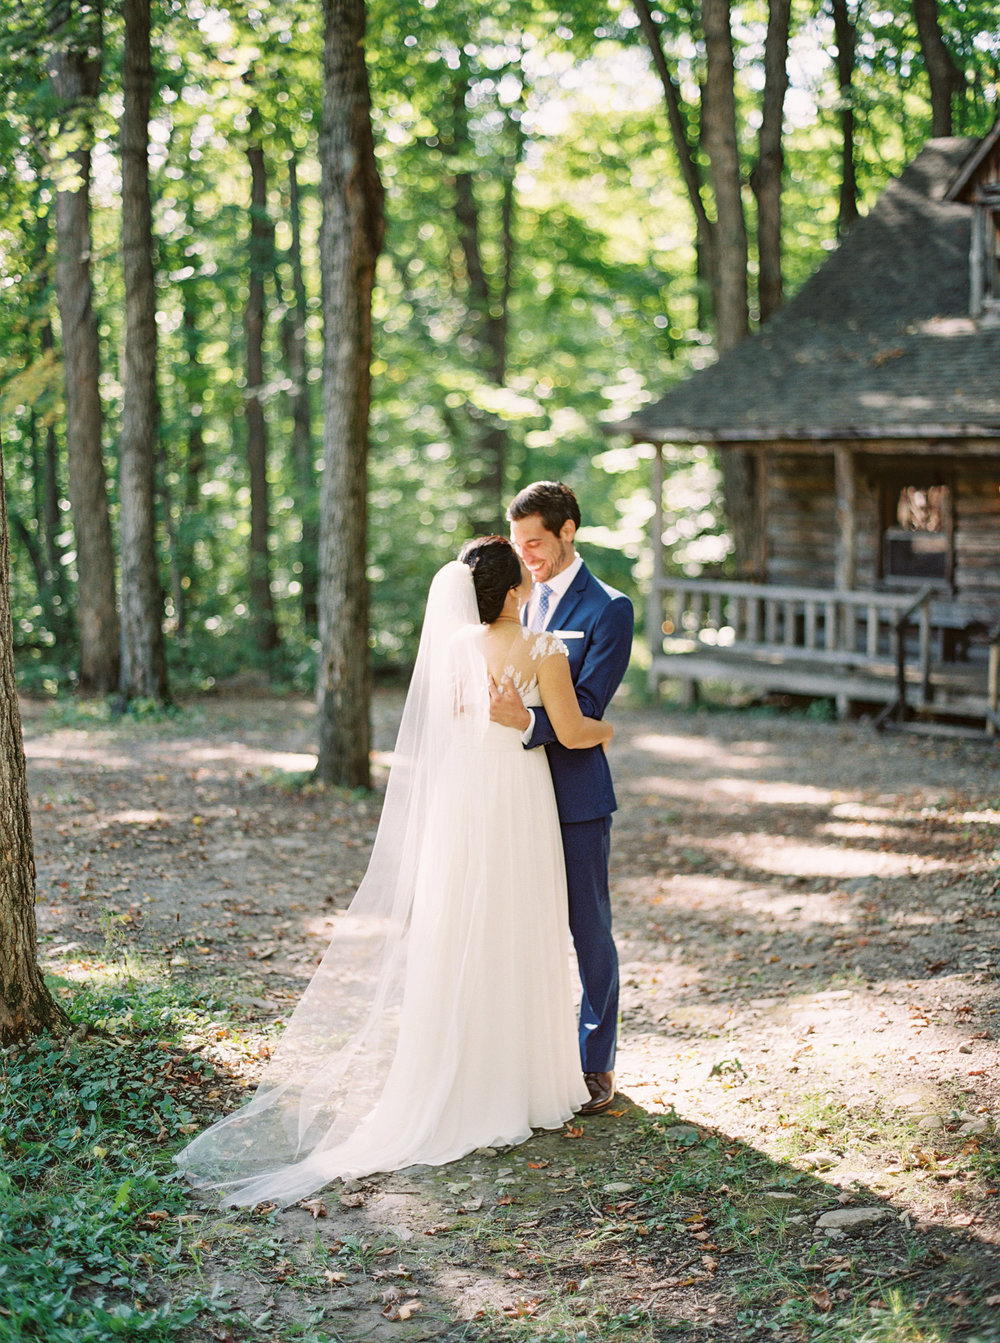 0061-WhenHeFoundHer-SugarShack-QuebecWedding-MagnoliaRouge.jpg